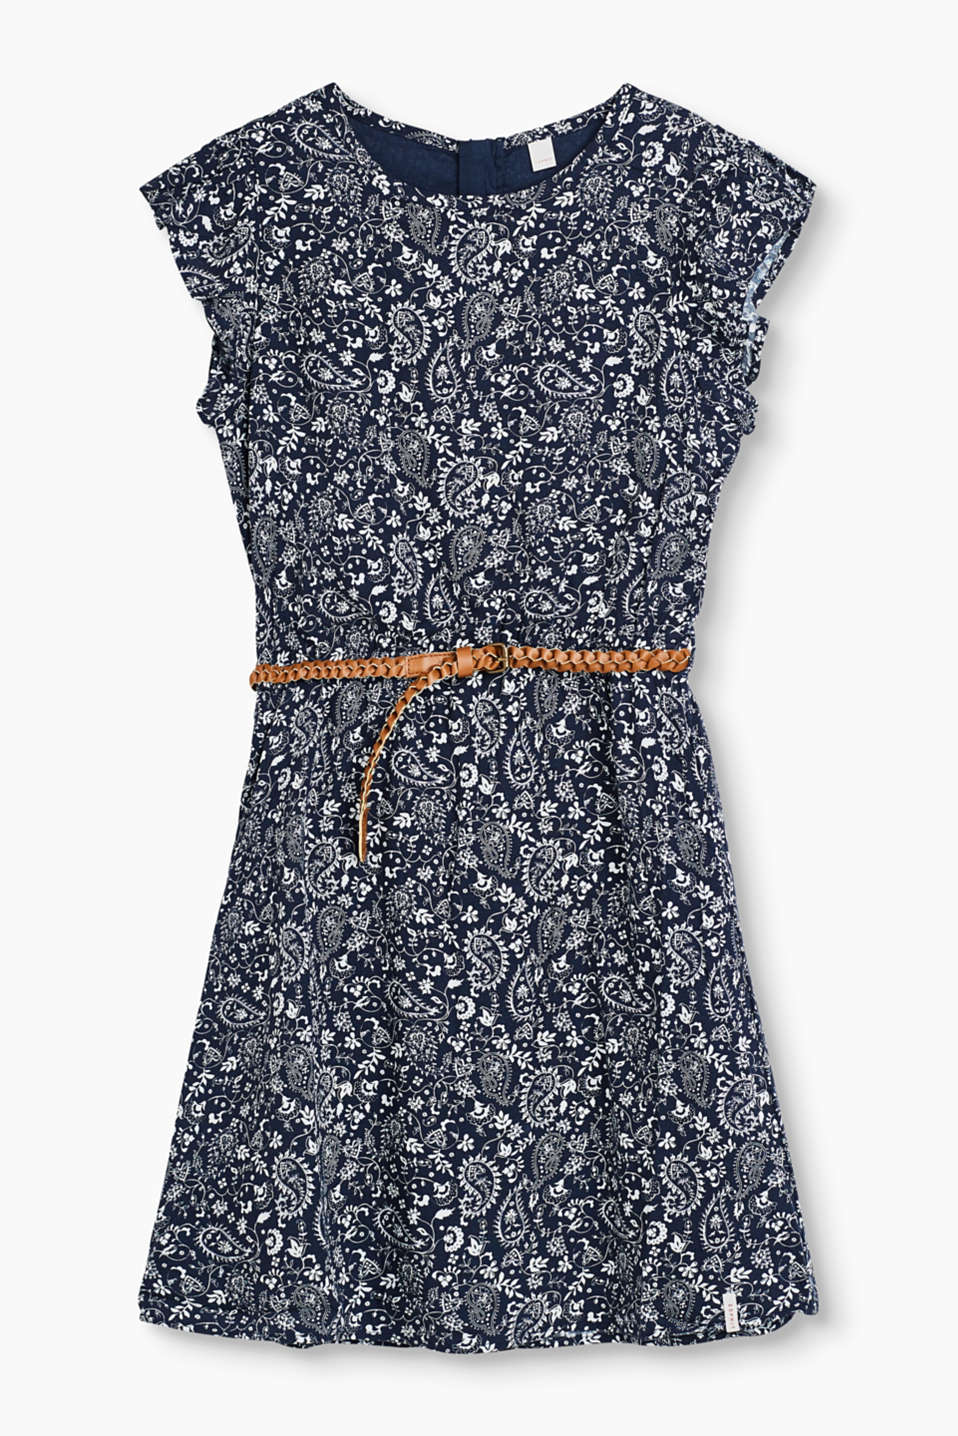 Soft dress with a paisley print, pretty cap sleeves and a faux leather belt